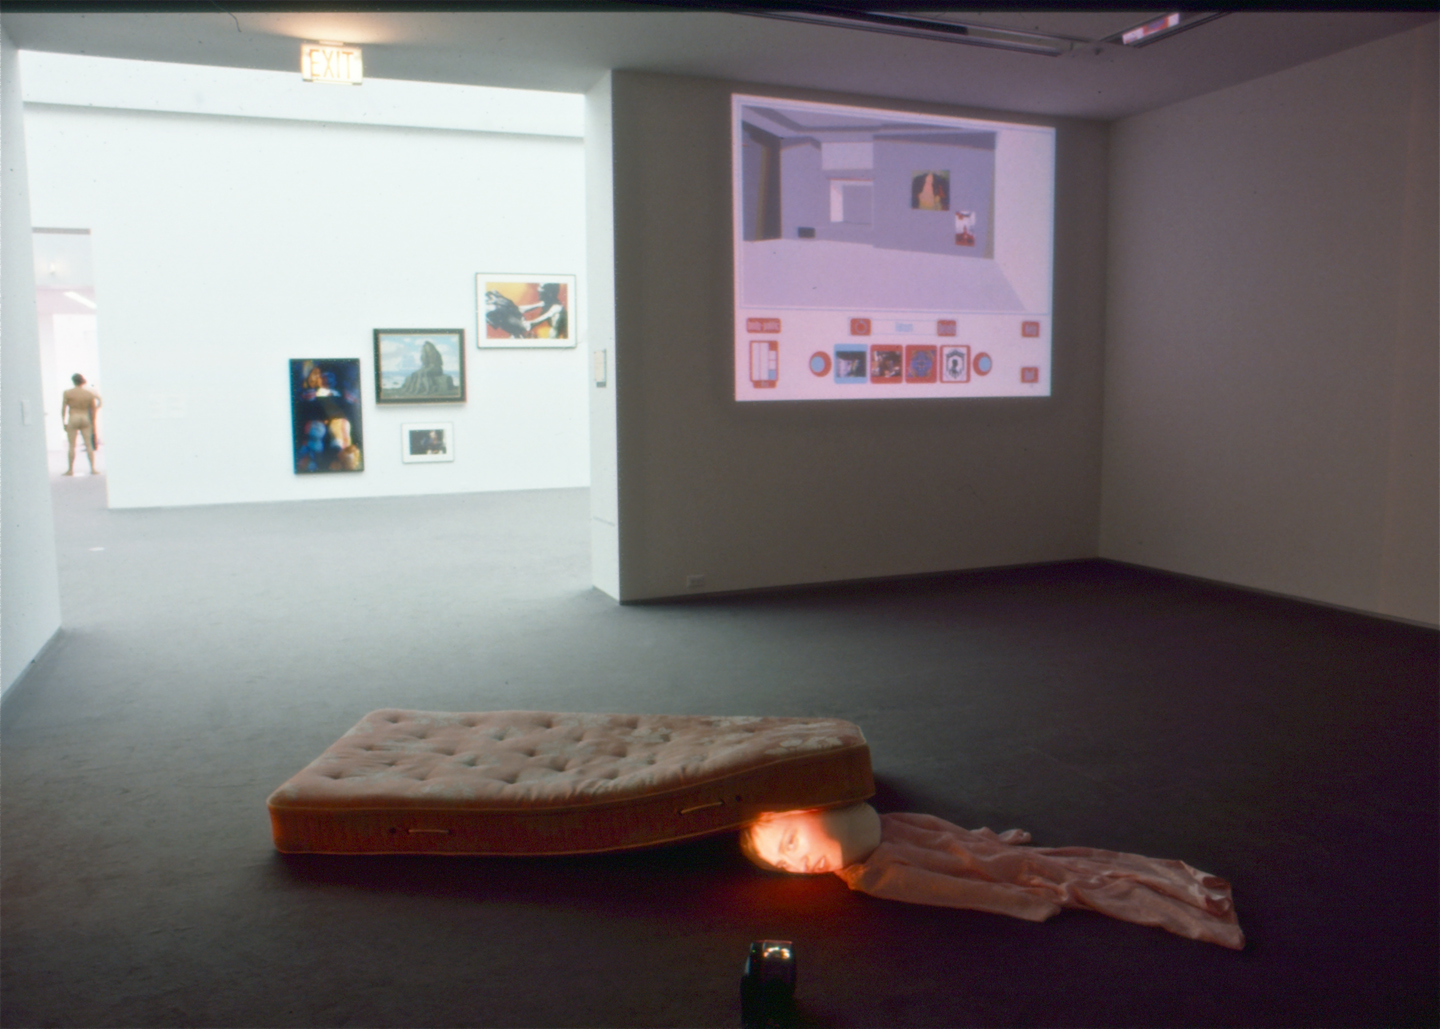 Virtual Curator interactive program in Transmute, installation view at Museum of Contemporary Art, Chicago, 1999. Courtesy of the Museum of Contemporary Art, Chicago